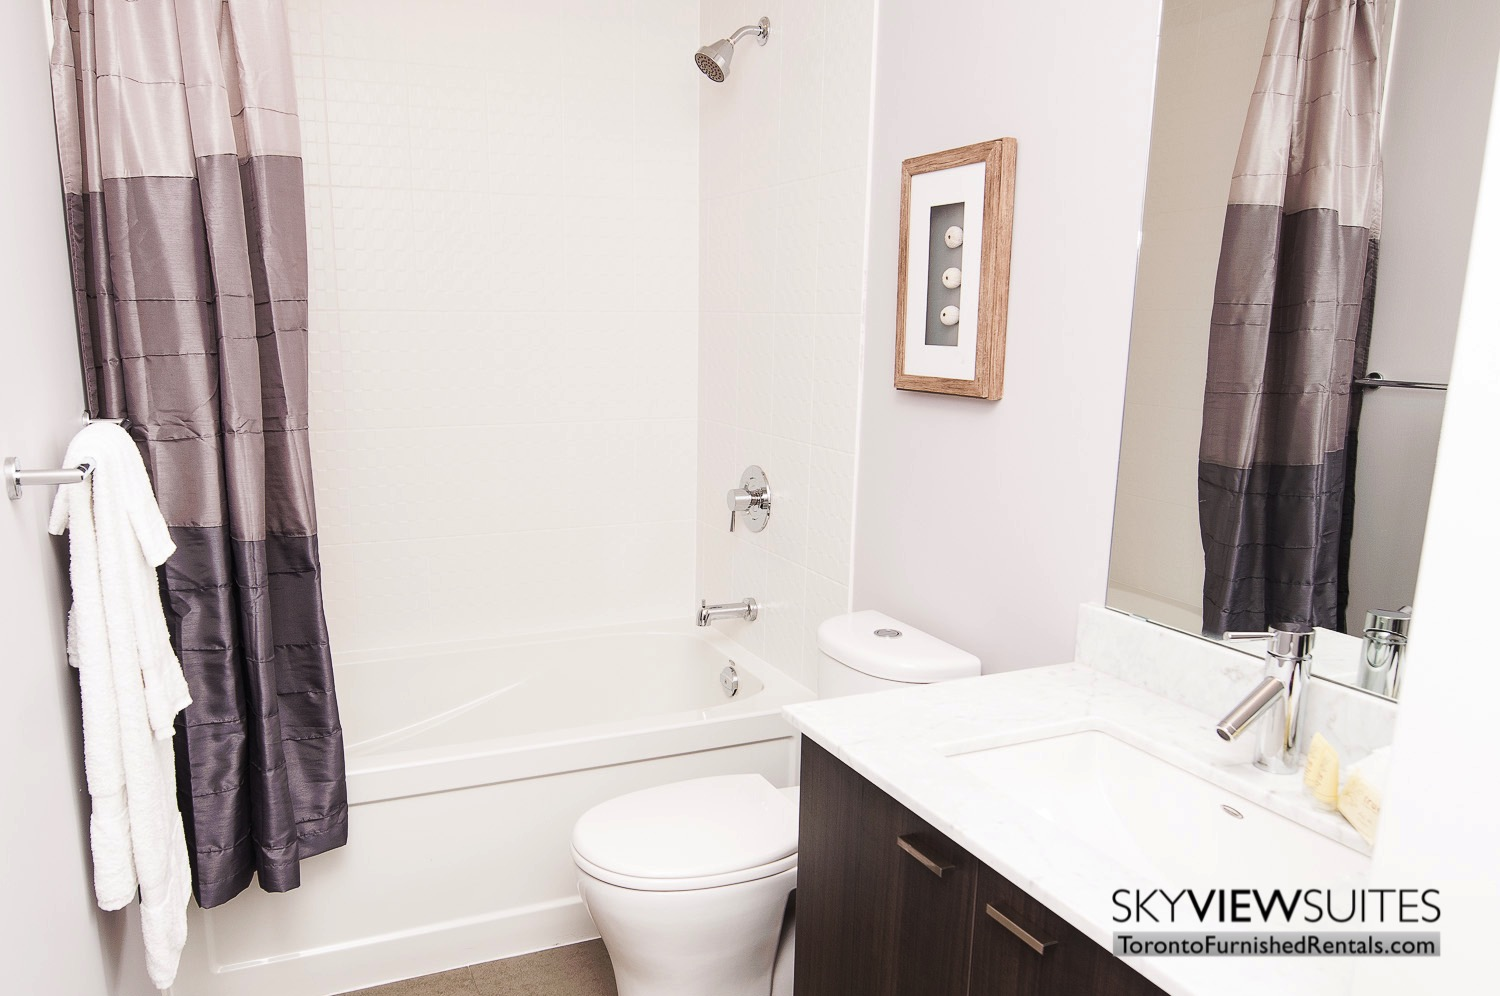 King west corporate rentals toronto shower and sink